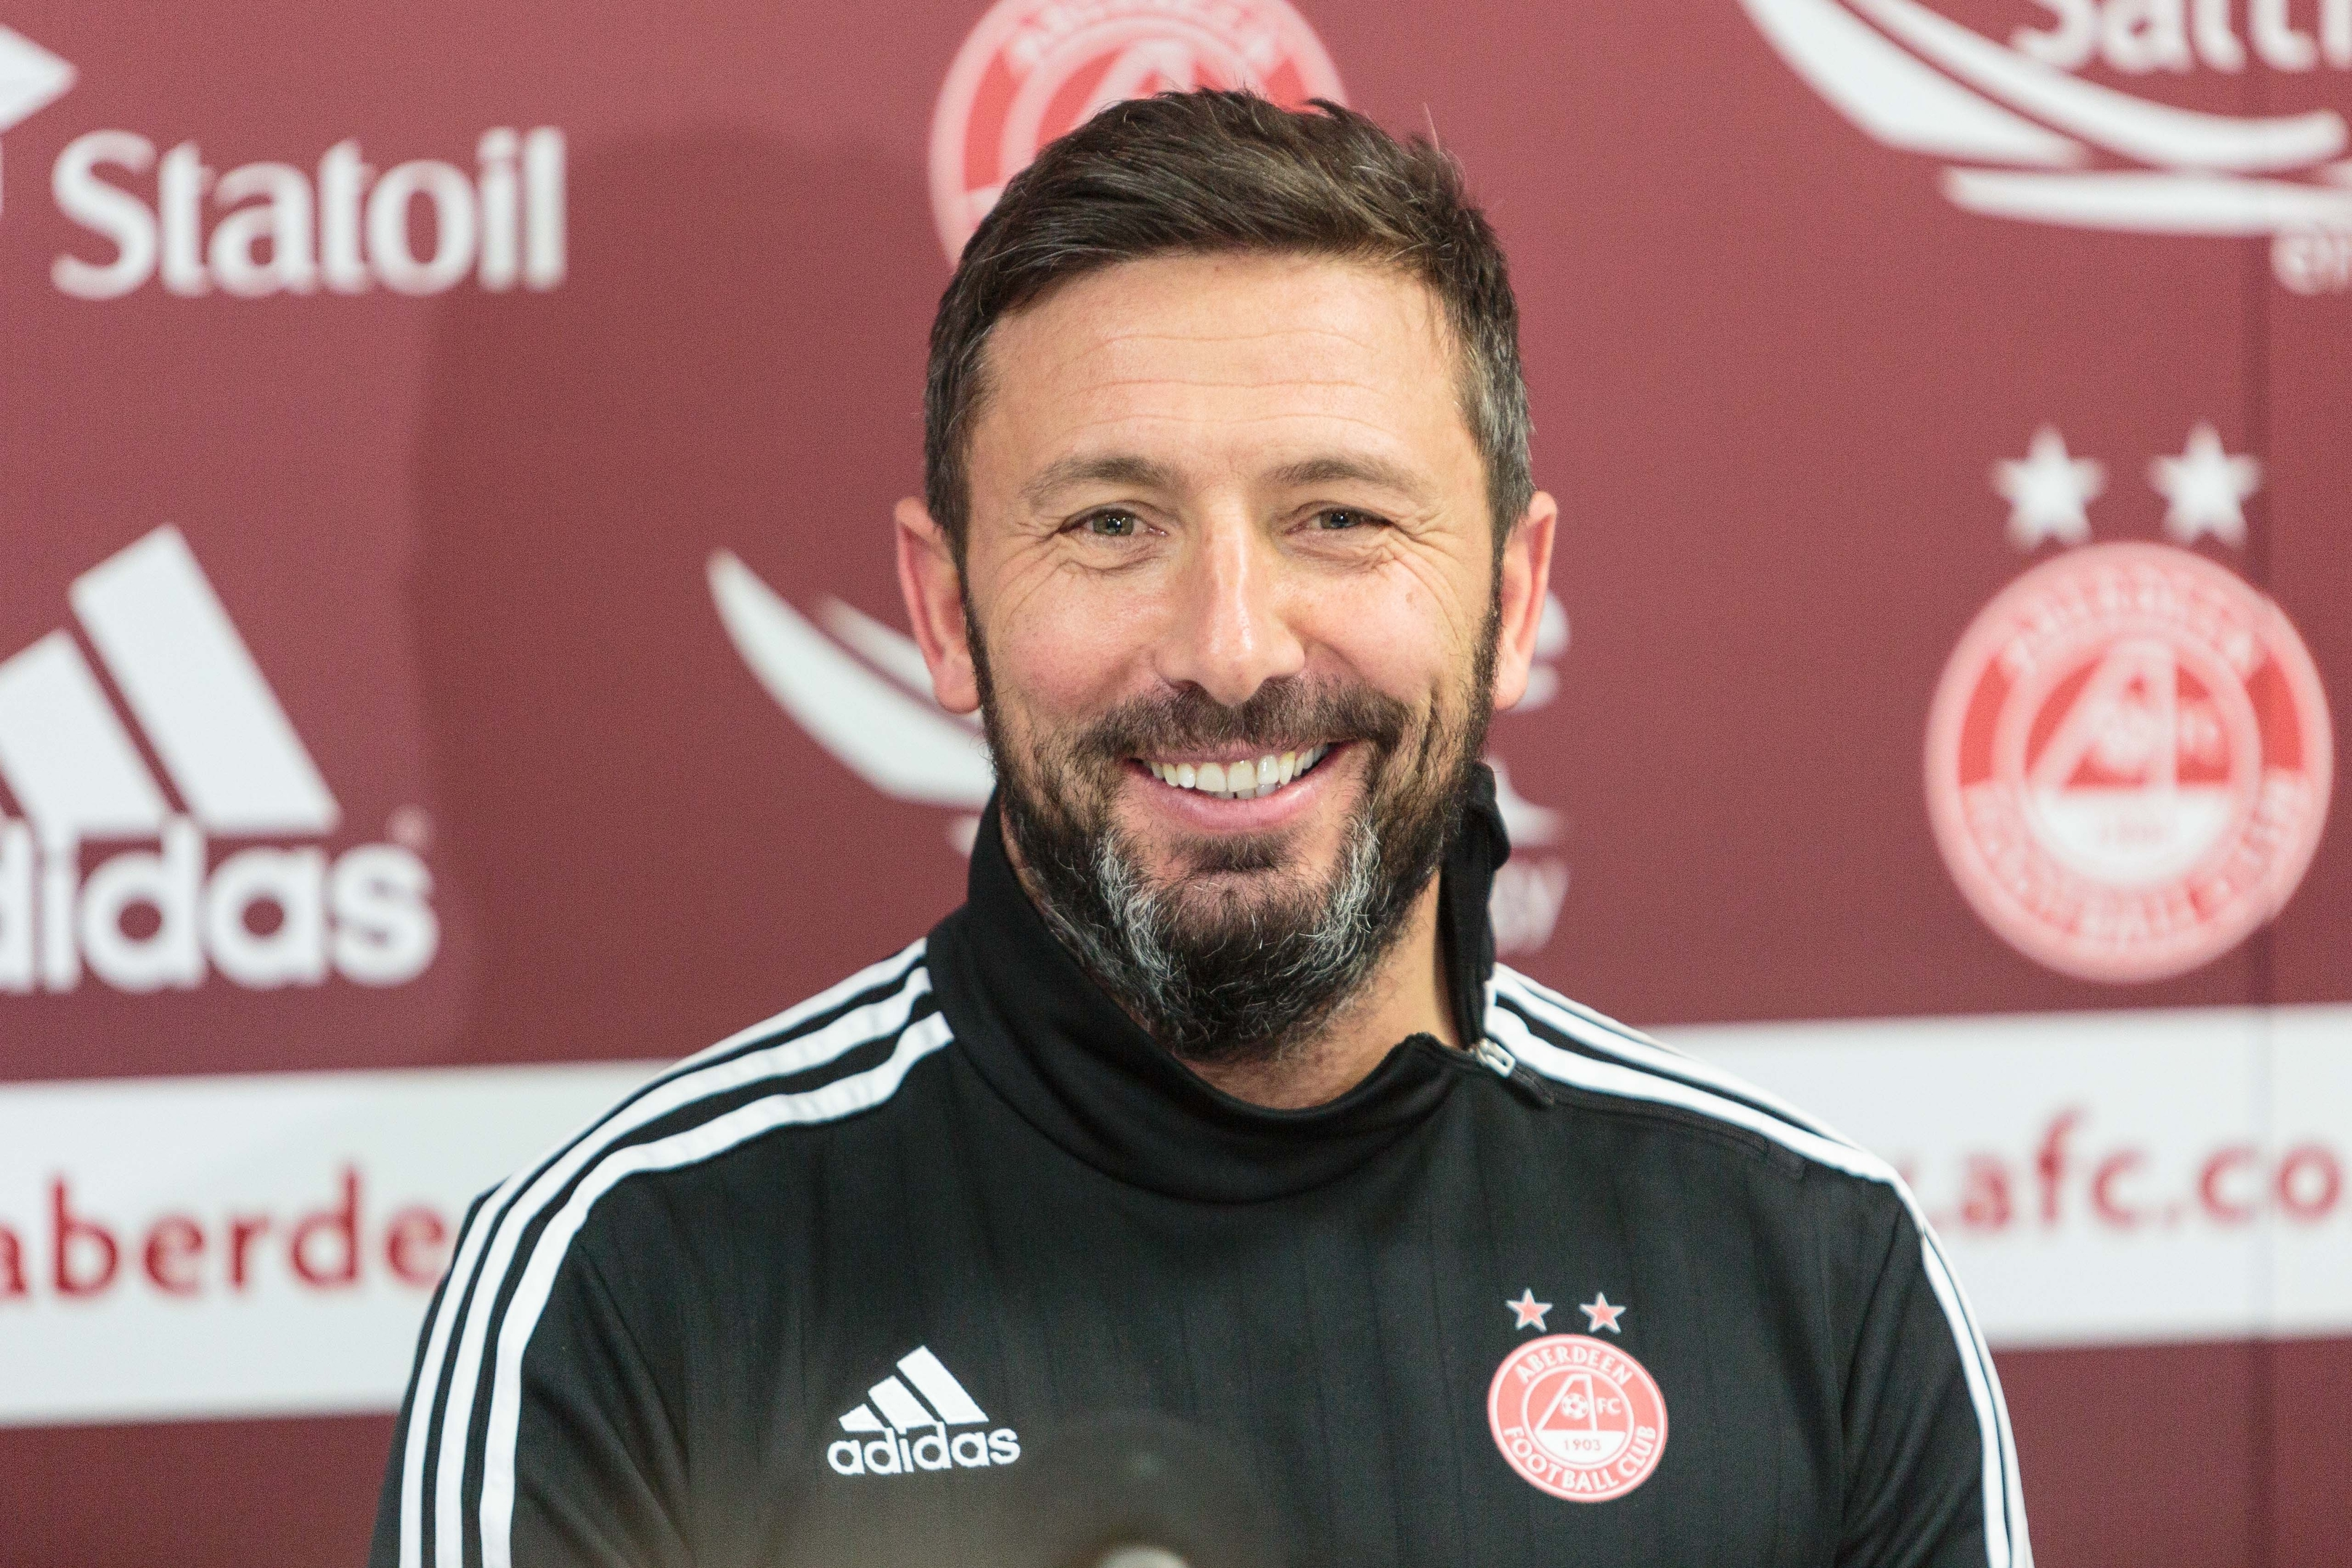 Aberdeen FC manager wishes offshore workers Merry Christmas